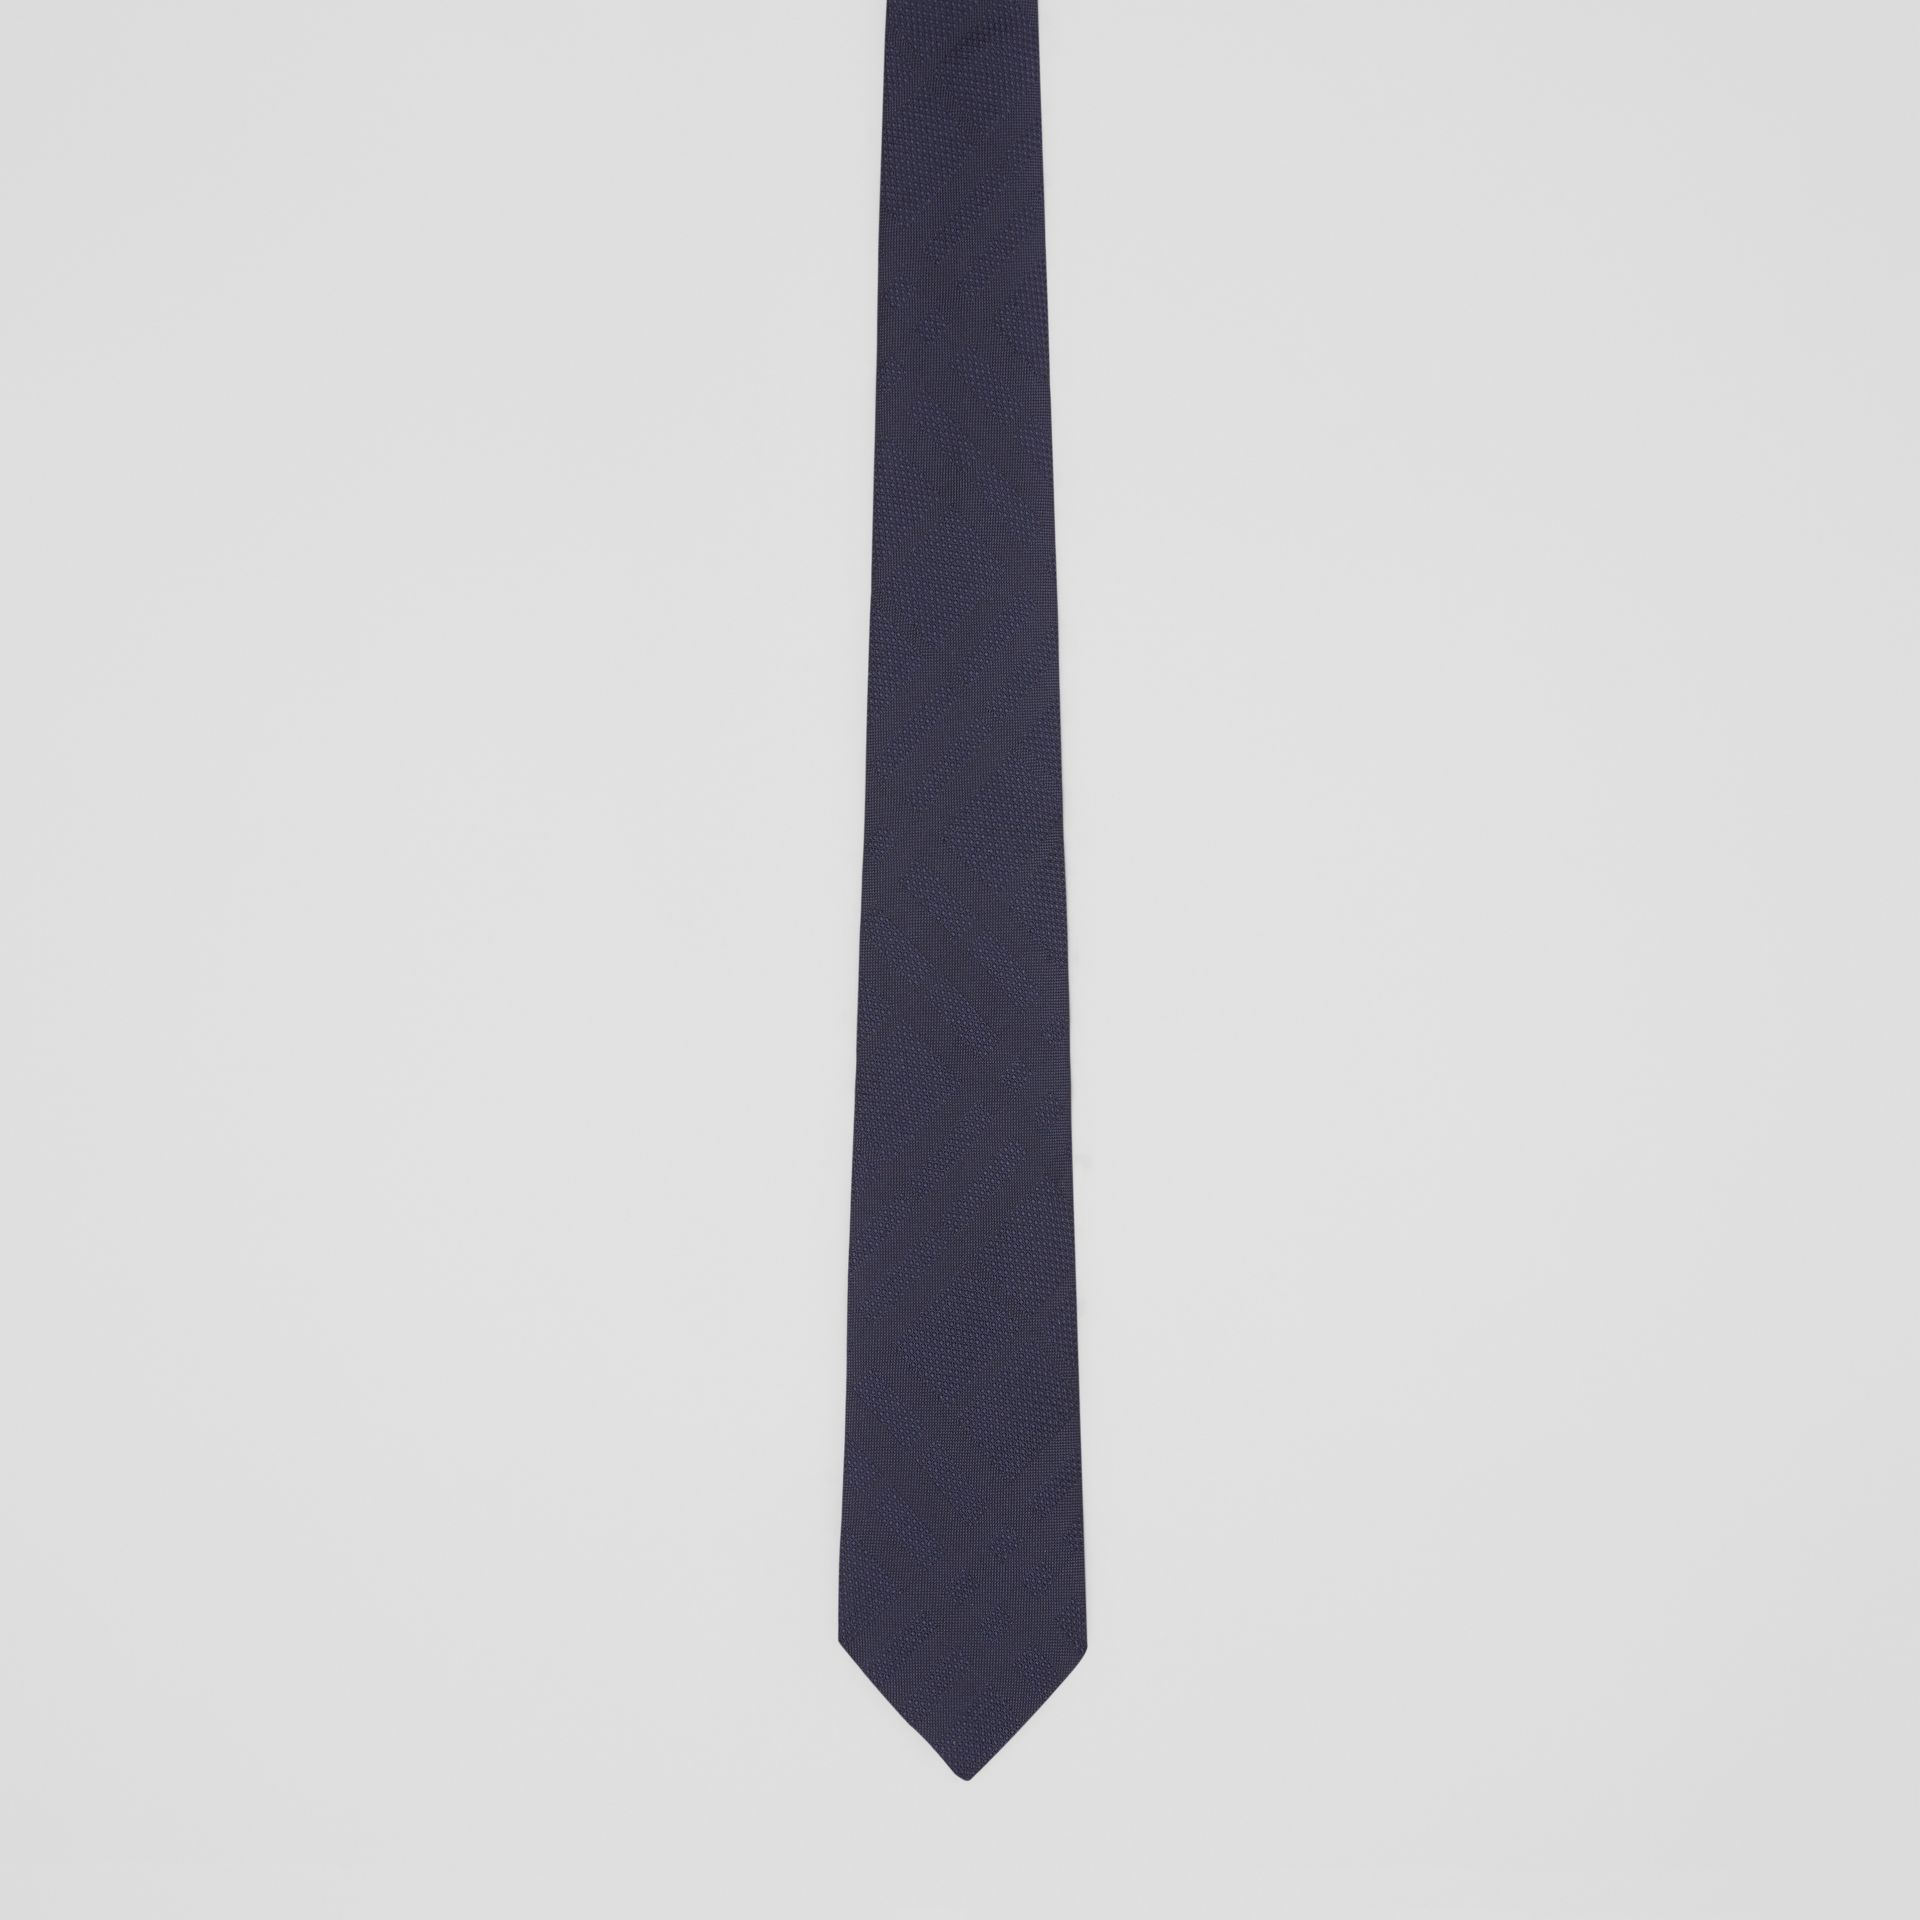 Classic Cut Check Silk Jacquard Tie in Navy - Men | Burberry United Kingdom - gallery image 3